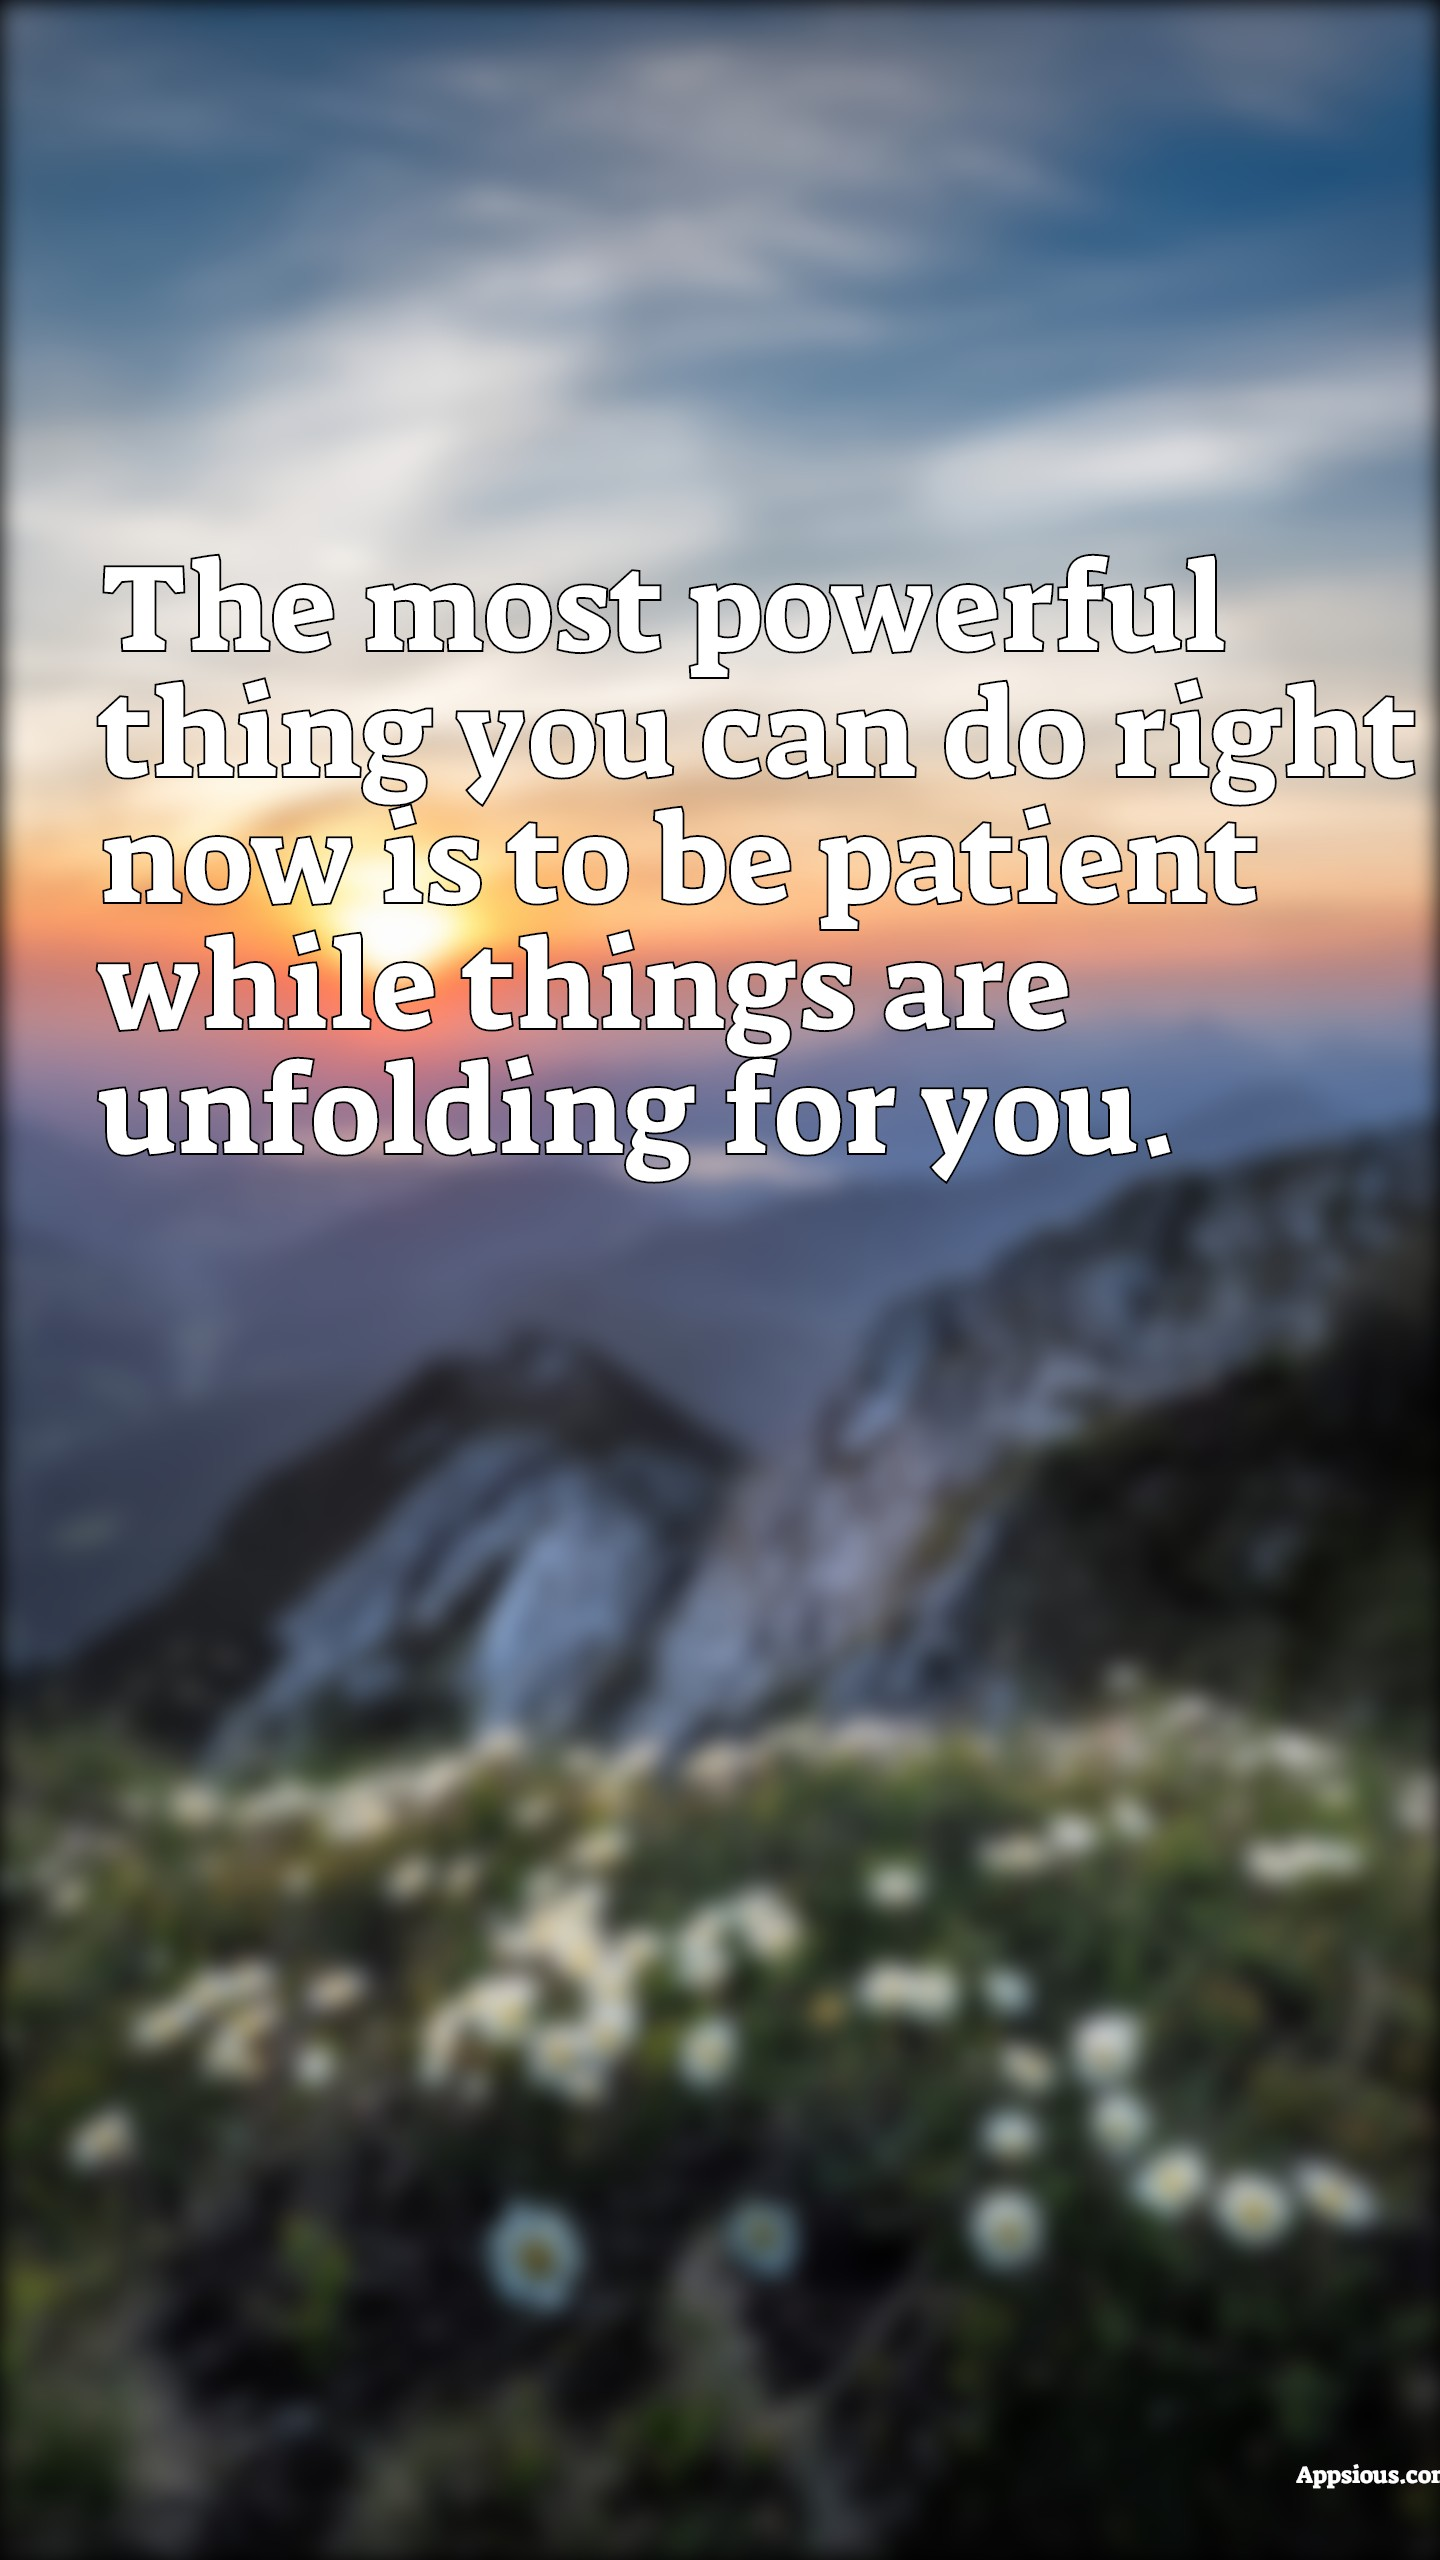 The most powerful thing you can do right now is to be patient while things are unfolding for you.